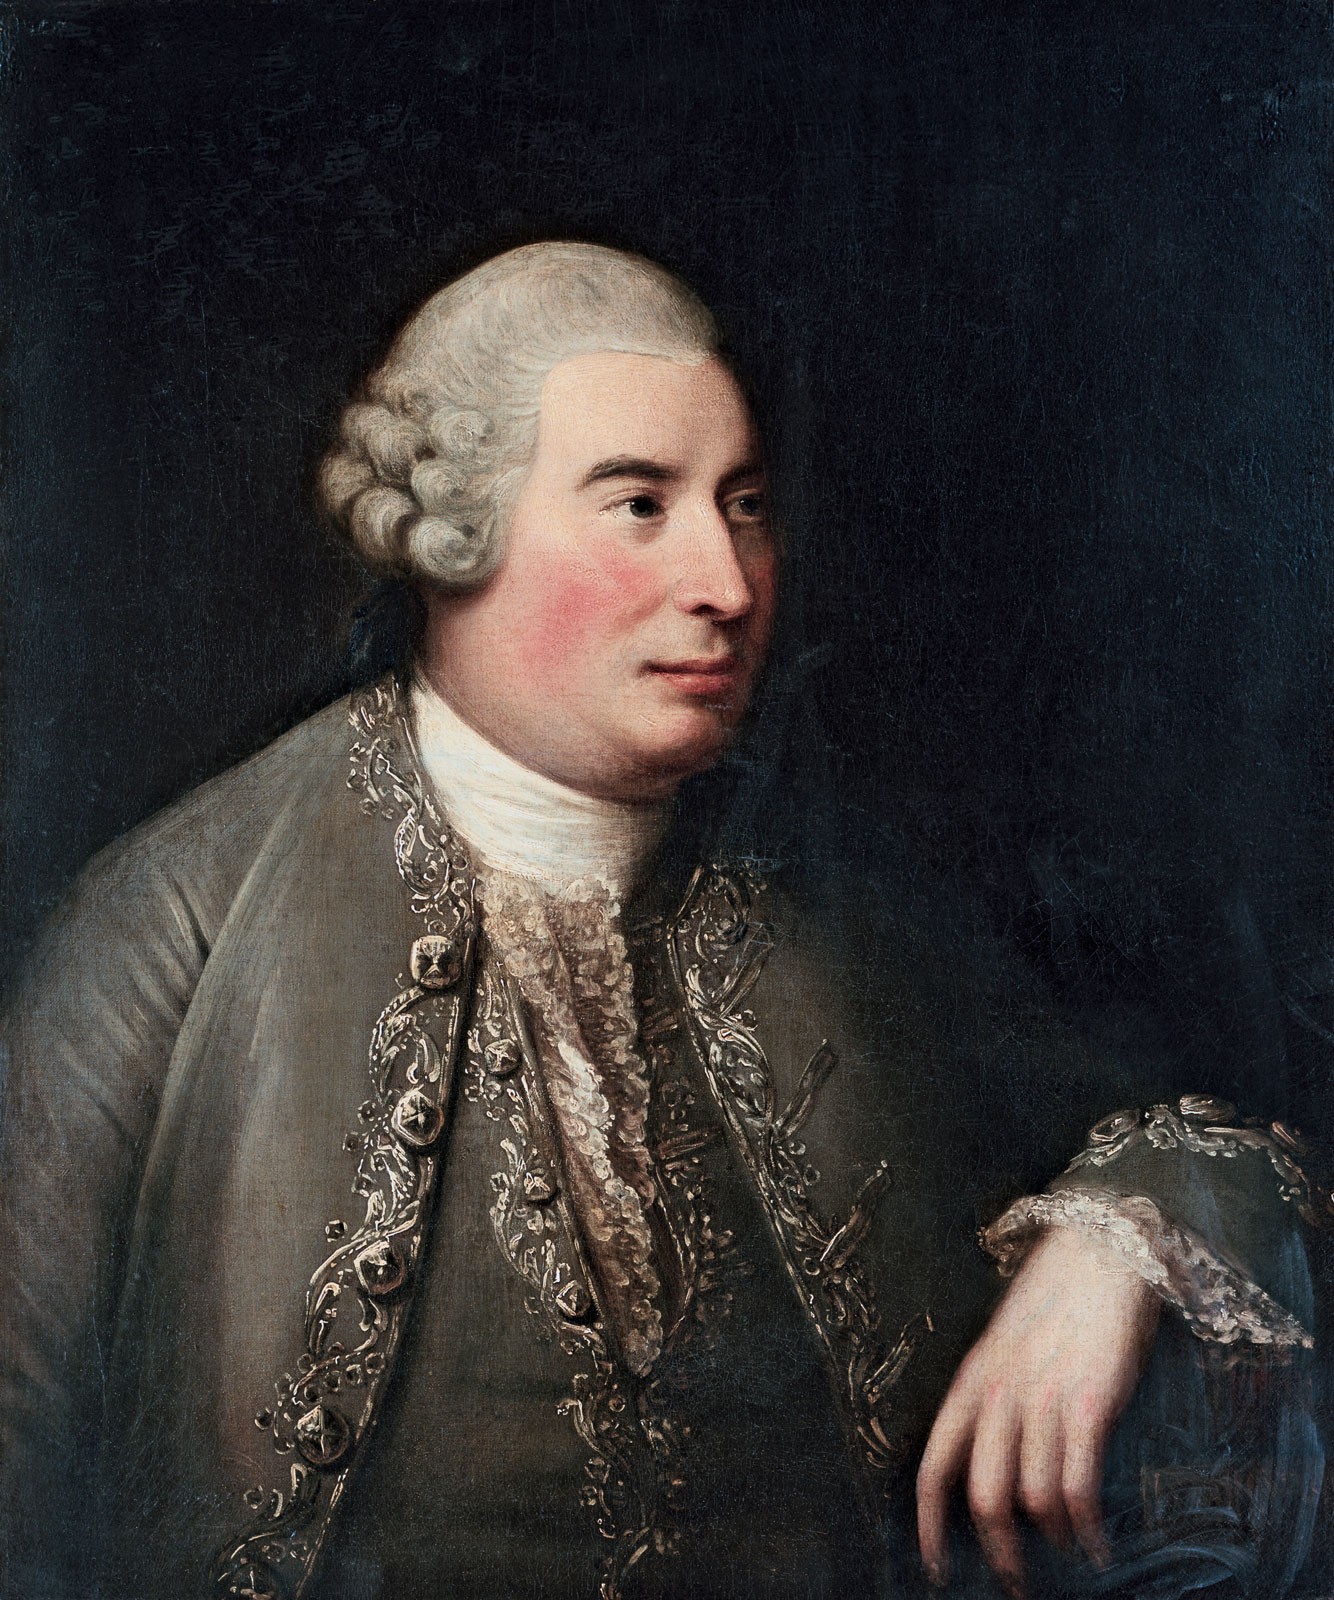 an analysis of the influential role of david hume in the awakening of immanuel kant